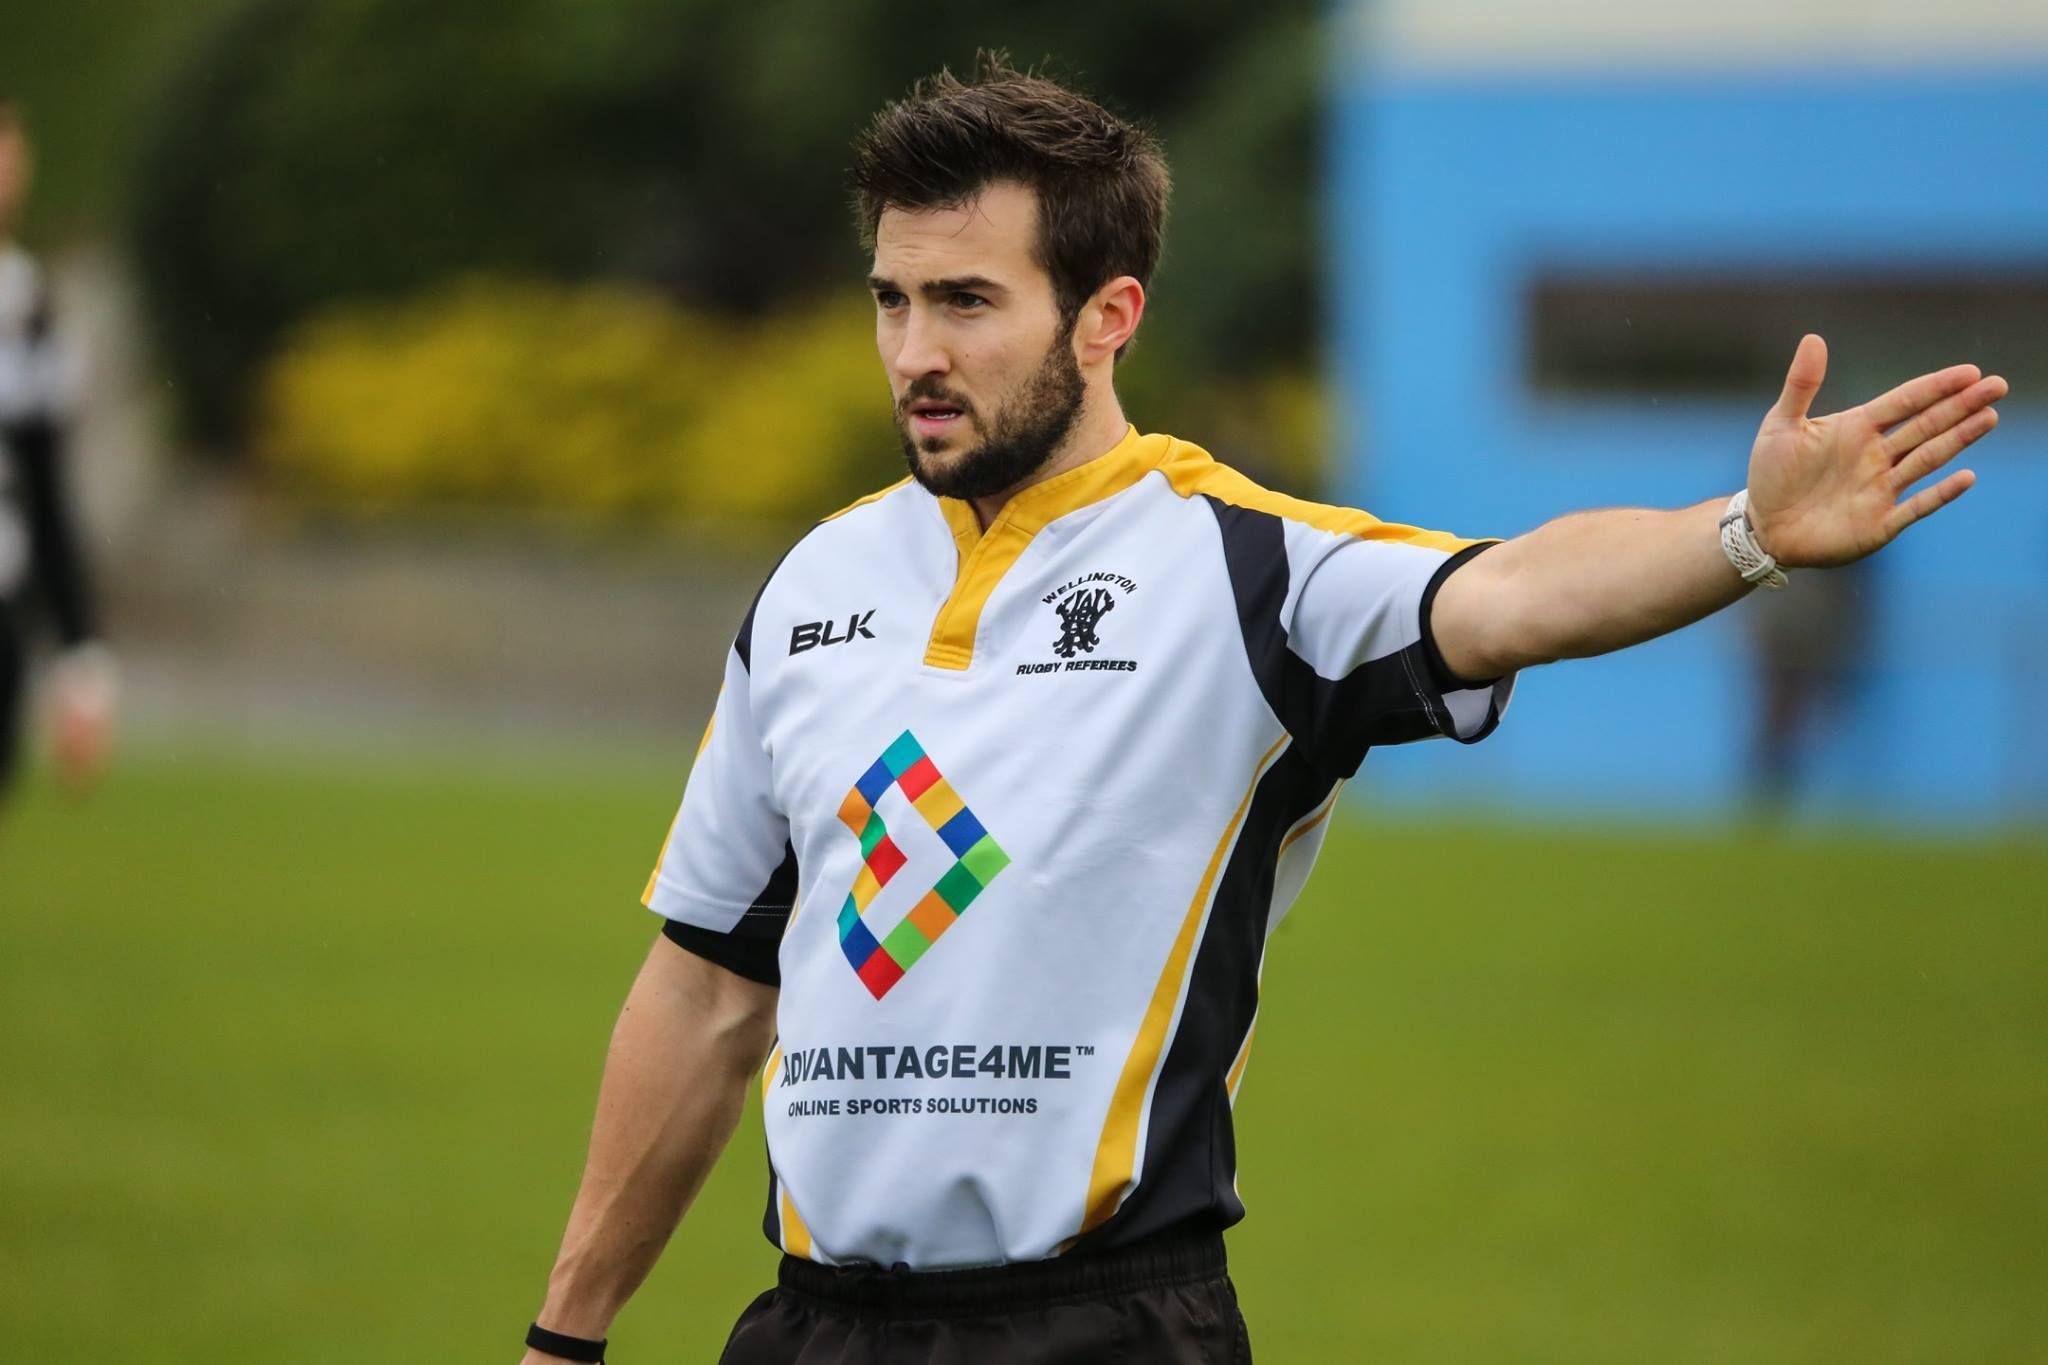 Wellington Rugby Referees